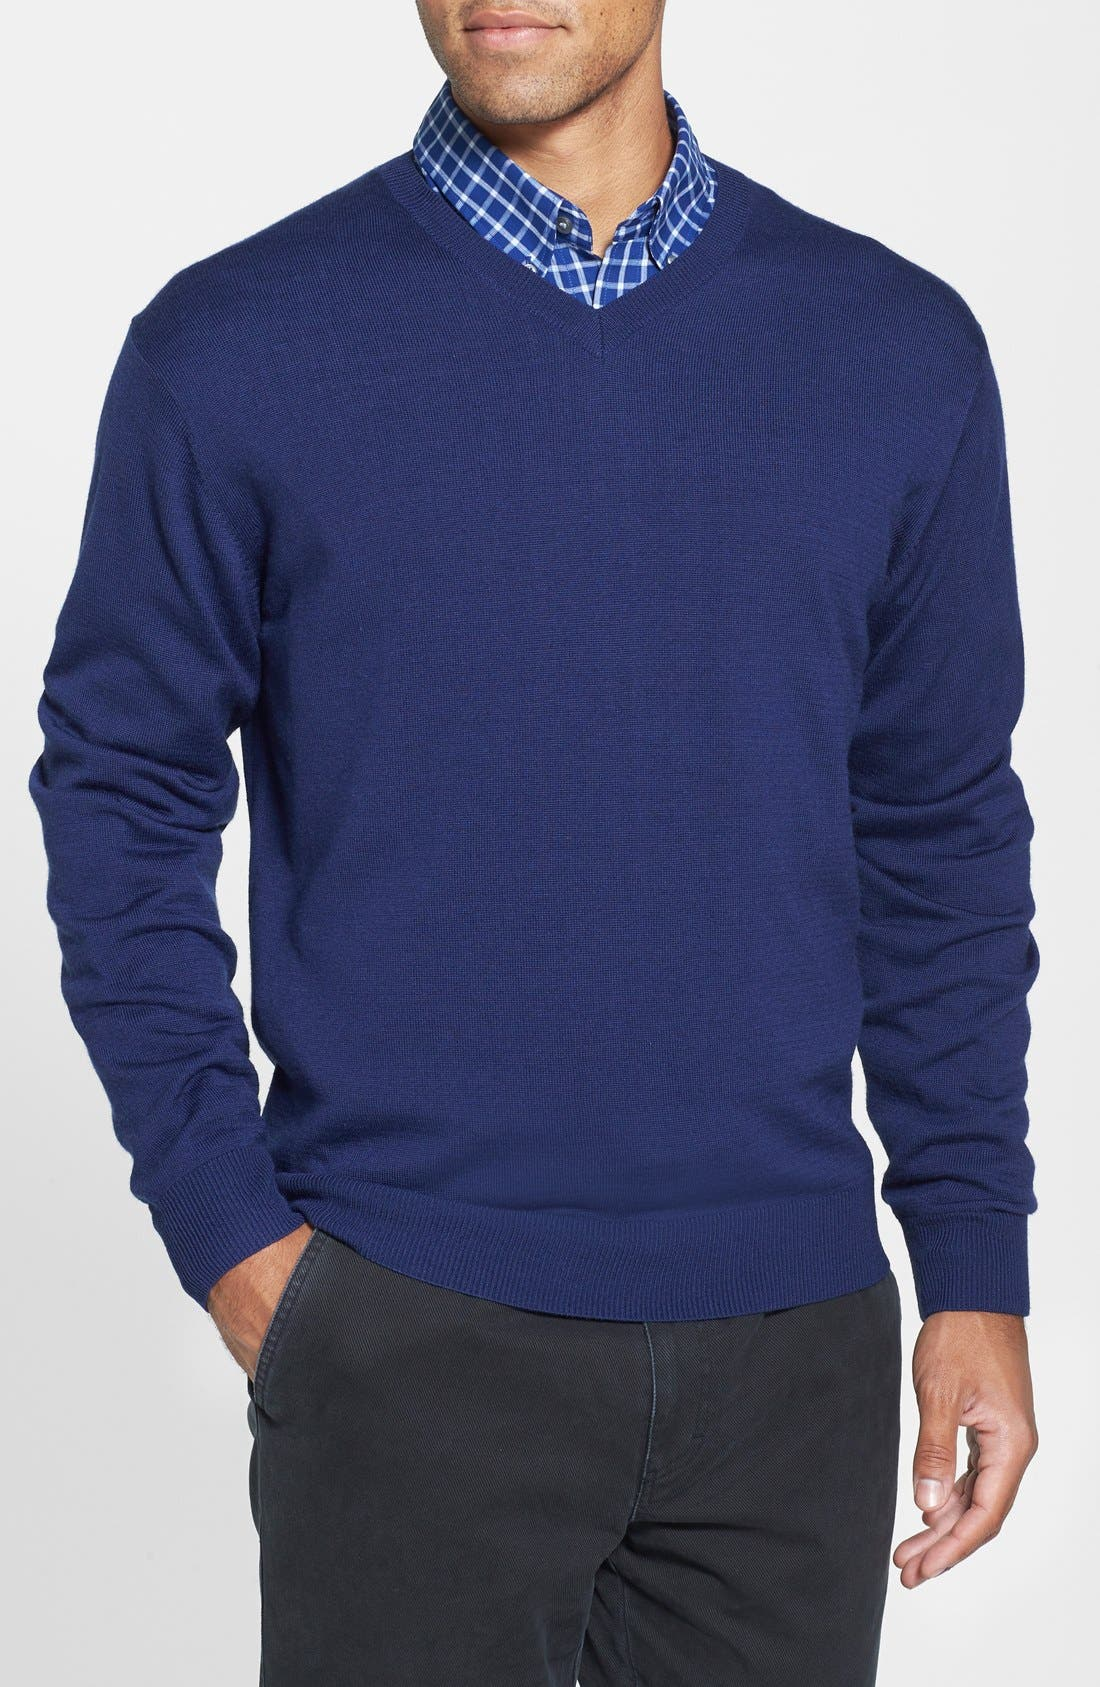 Douglas V-Neck Sweater,                         Main,                         color, Liberty Navy